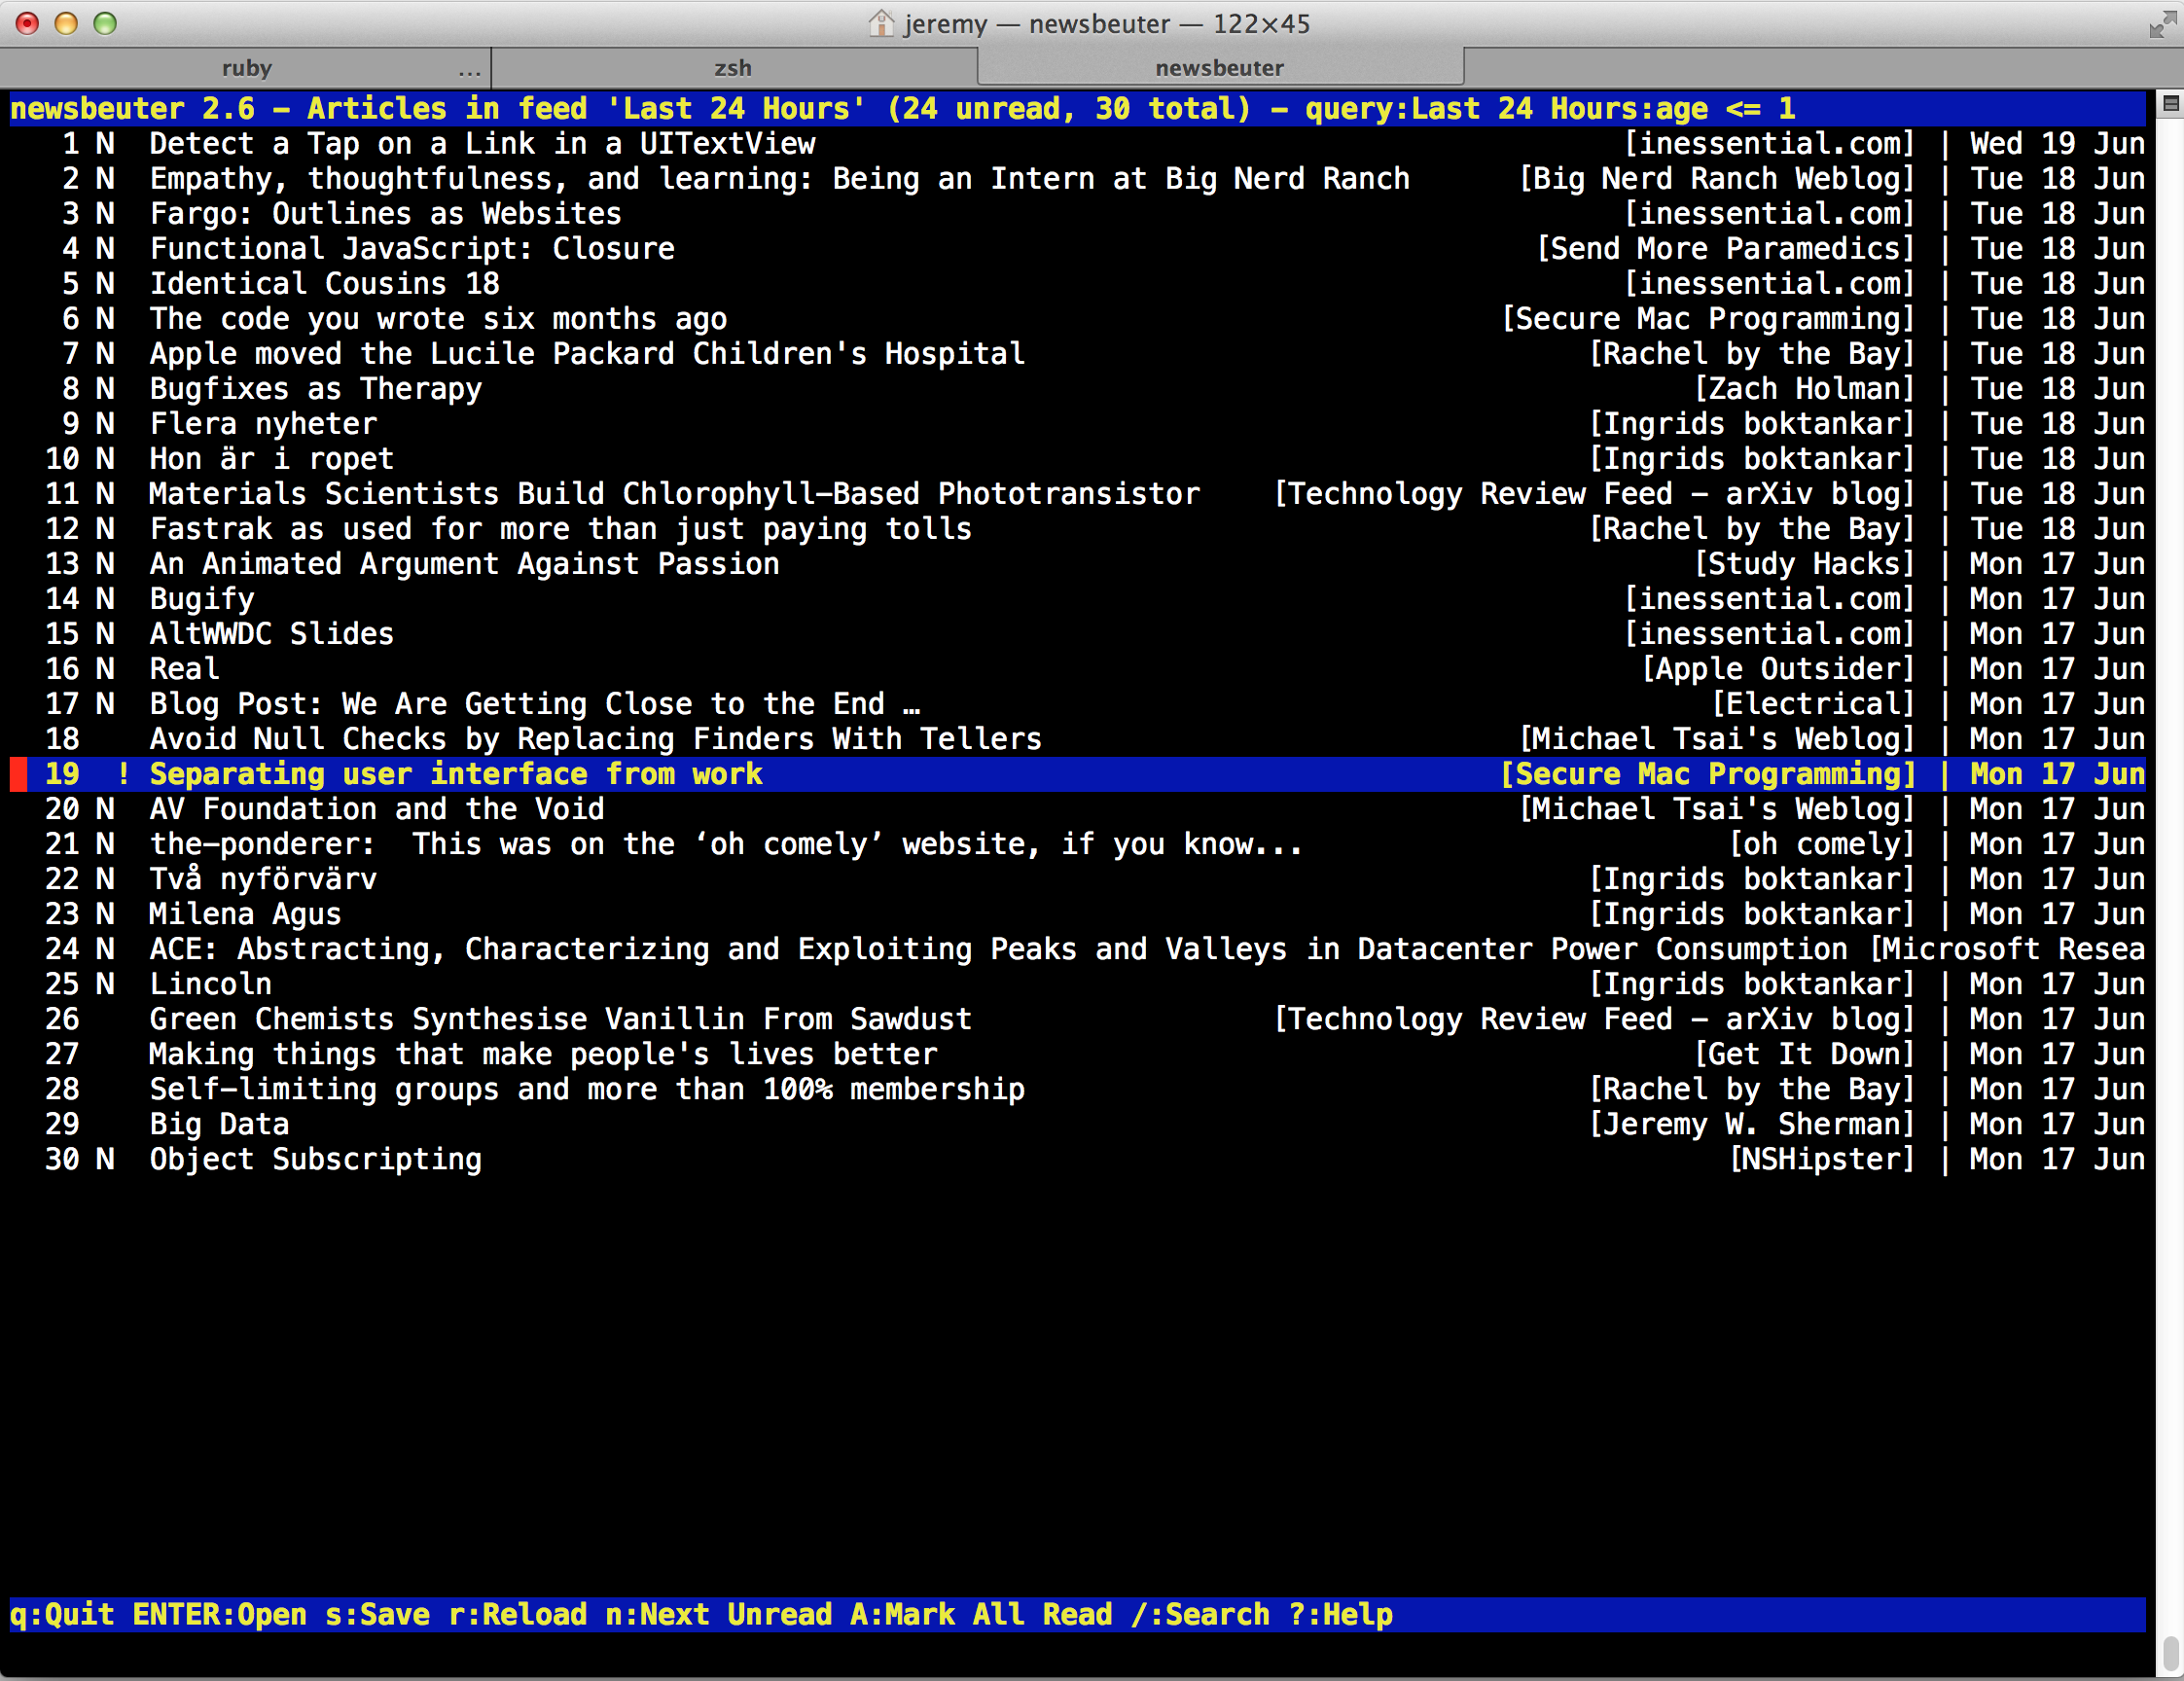 screenshot of Terminal showing Newsbeuter viewing my Last 24 Hours query feed